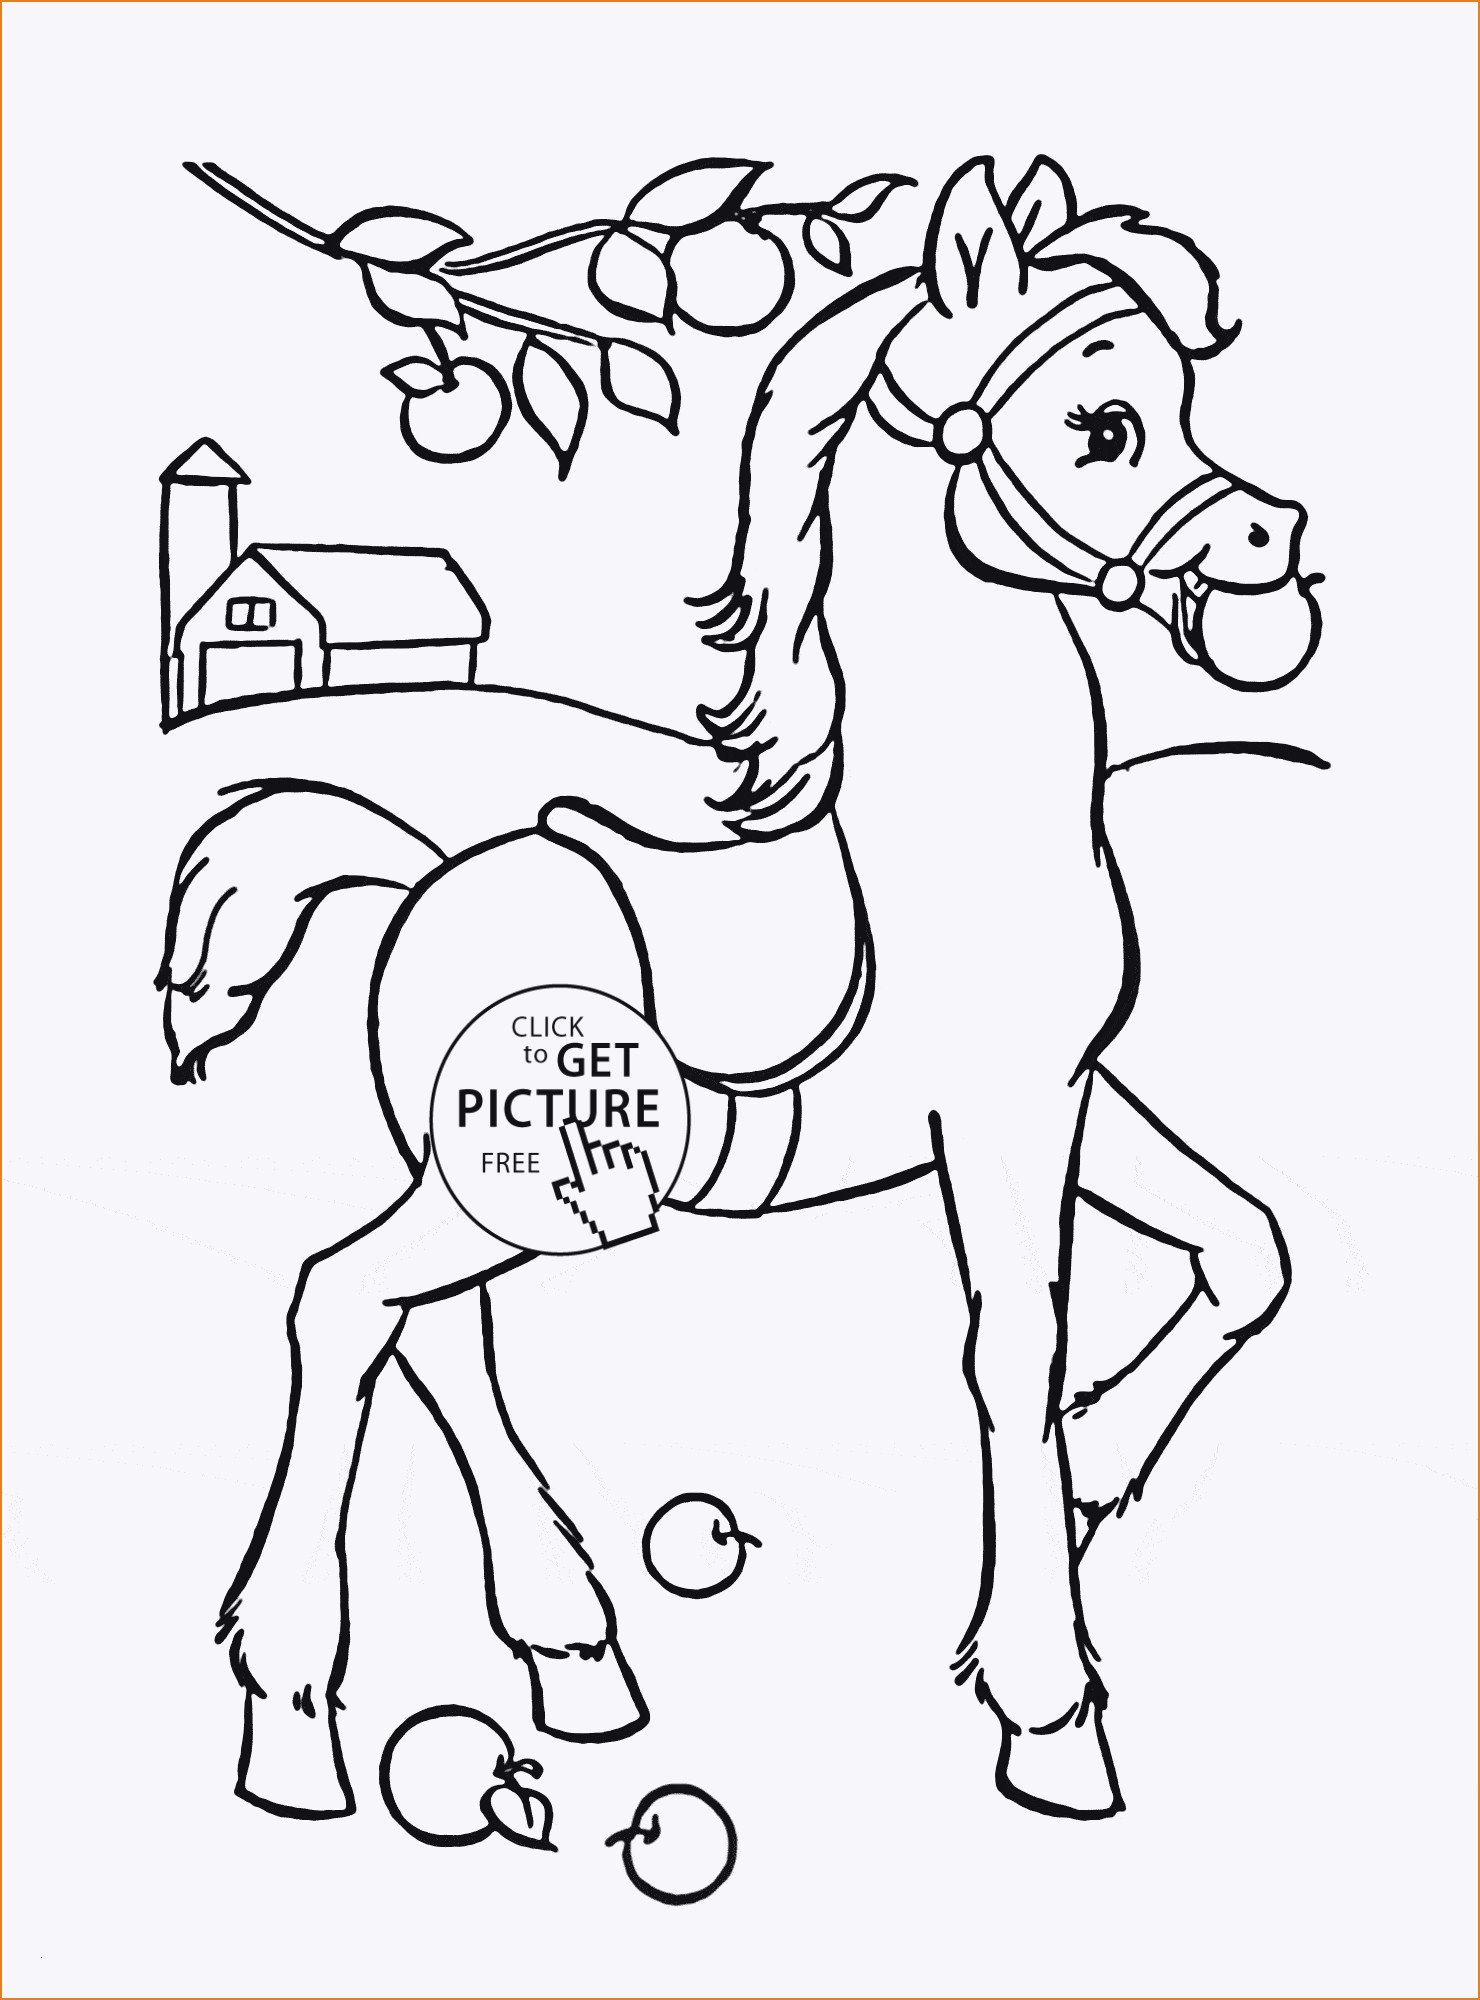 horse coloring pages printable Download-Ausmalbilder Mit Pferden Neu Printable Horse Coloring Pages Stylish 44 Ausmalbilder Pferde Auf 7-p